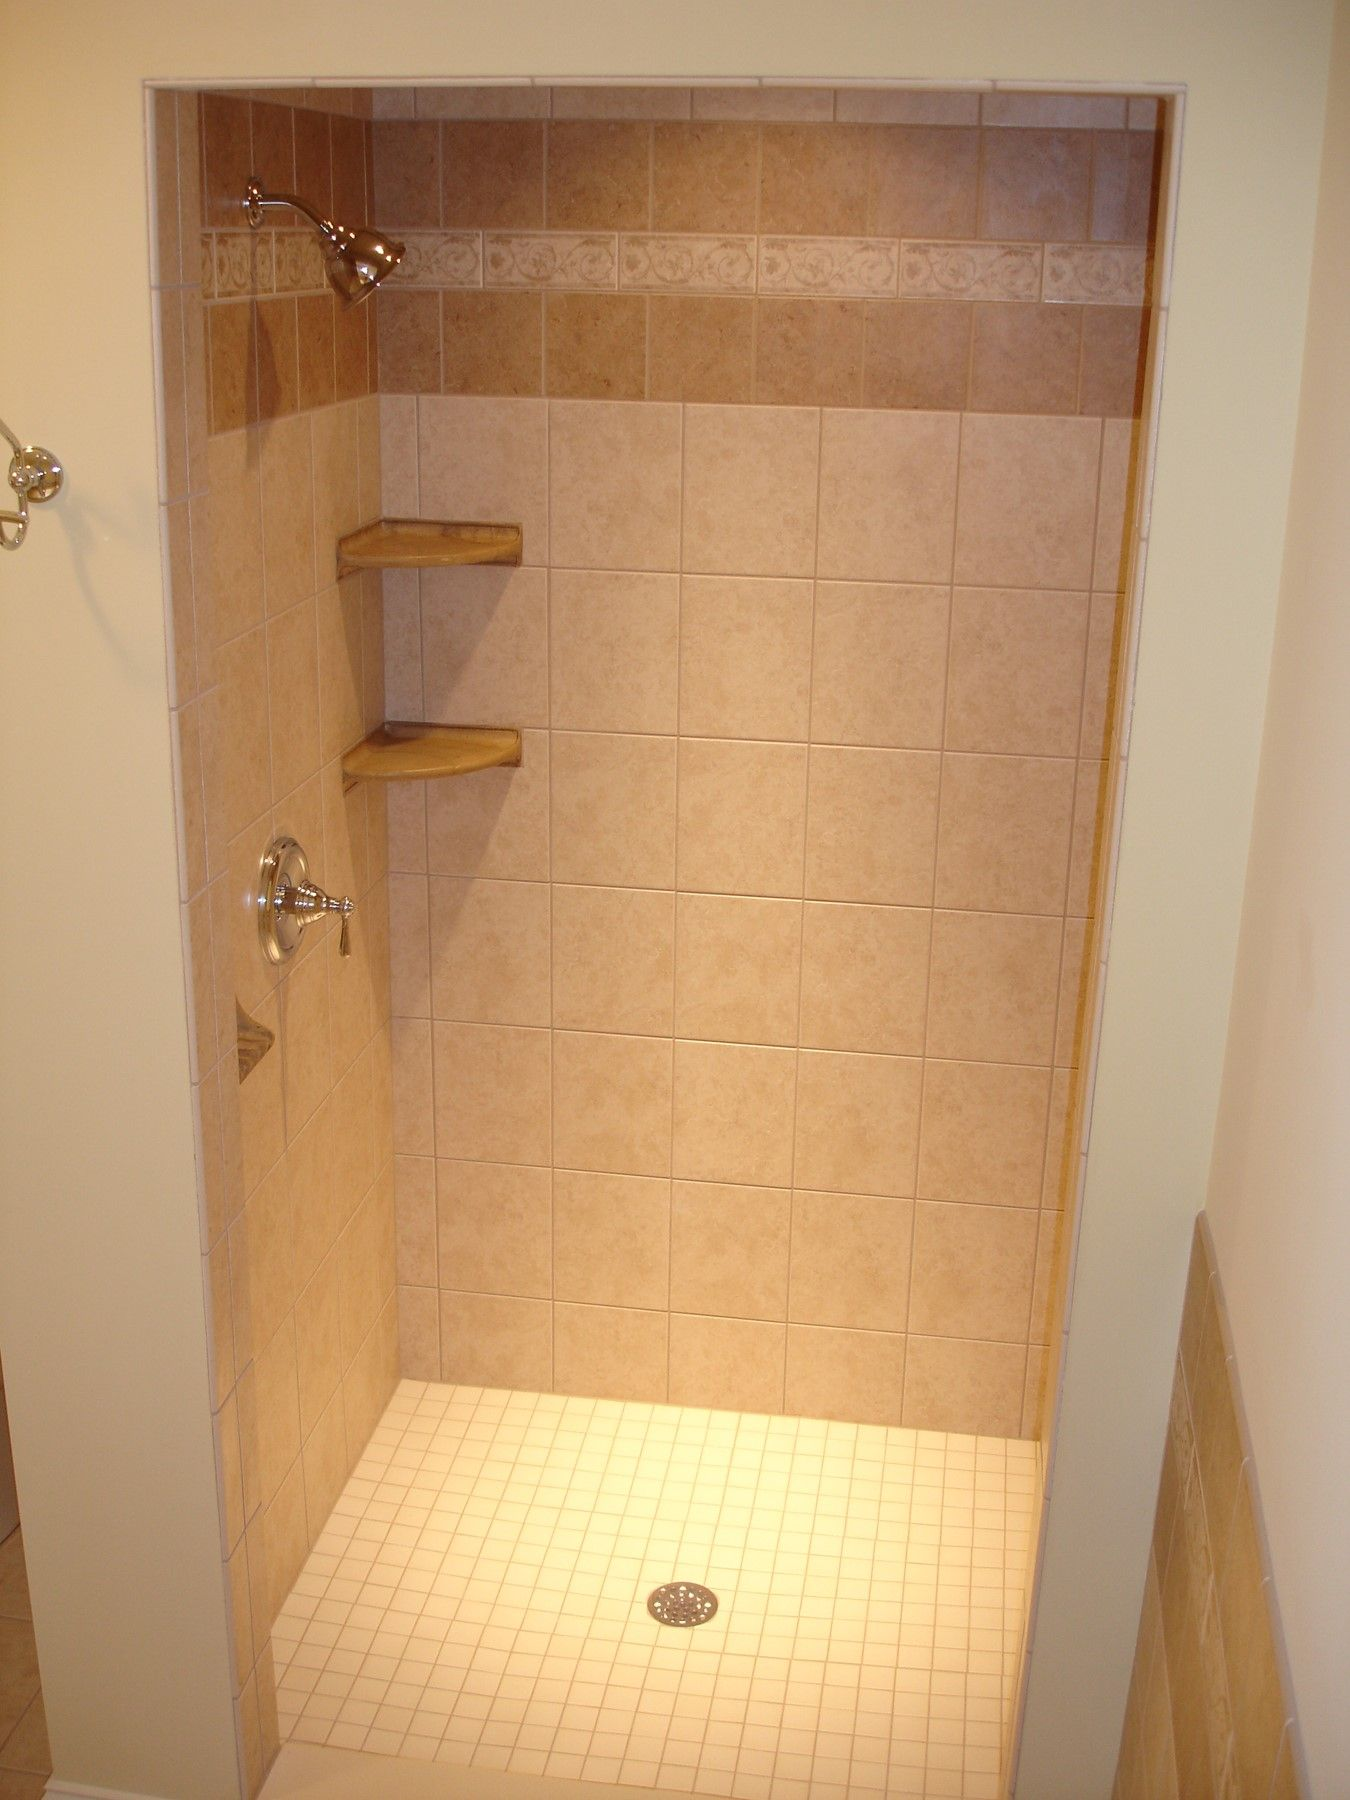 Cheap Shower Stalls Stand Up Shower Ideas Showers Glamorous Stand Up Shower Stall Home Depot Shower Small Bathroom Remodel Shower Remodel Bathroom Design Small